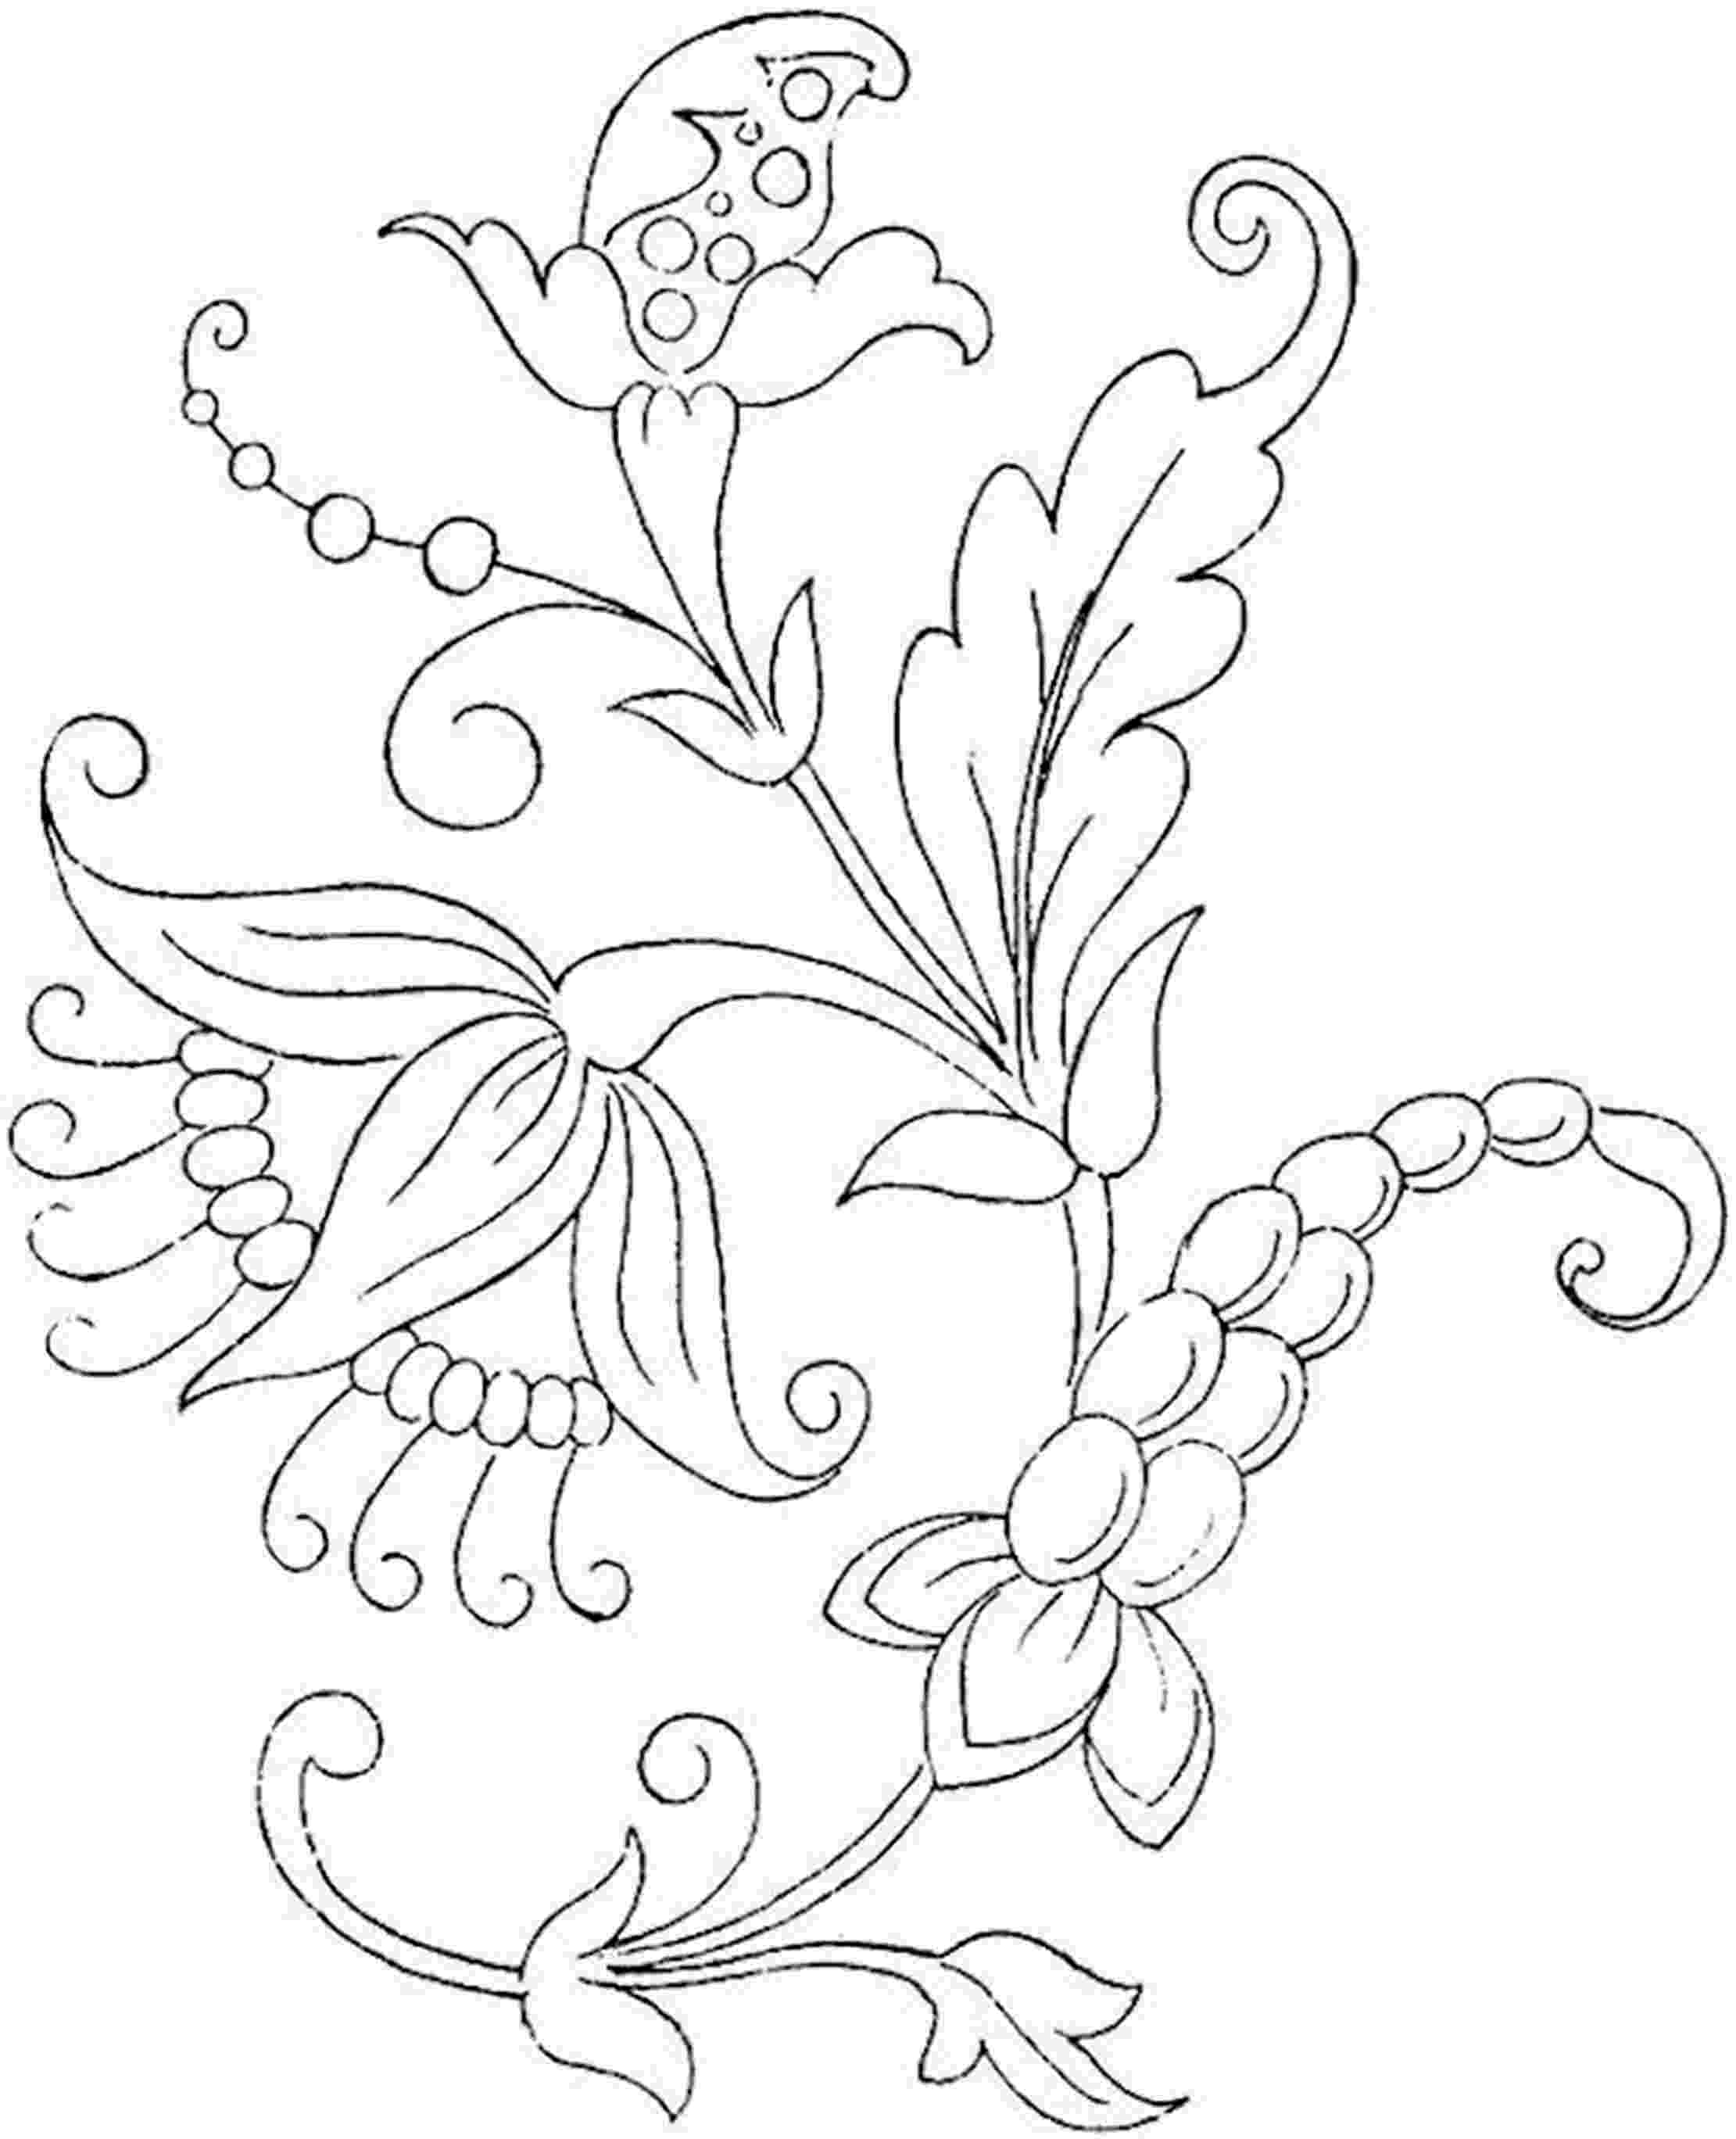 coloring page of flower free printable flower coloring pages for kids best of flower coloring page 1 1